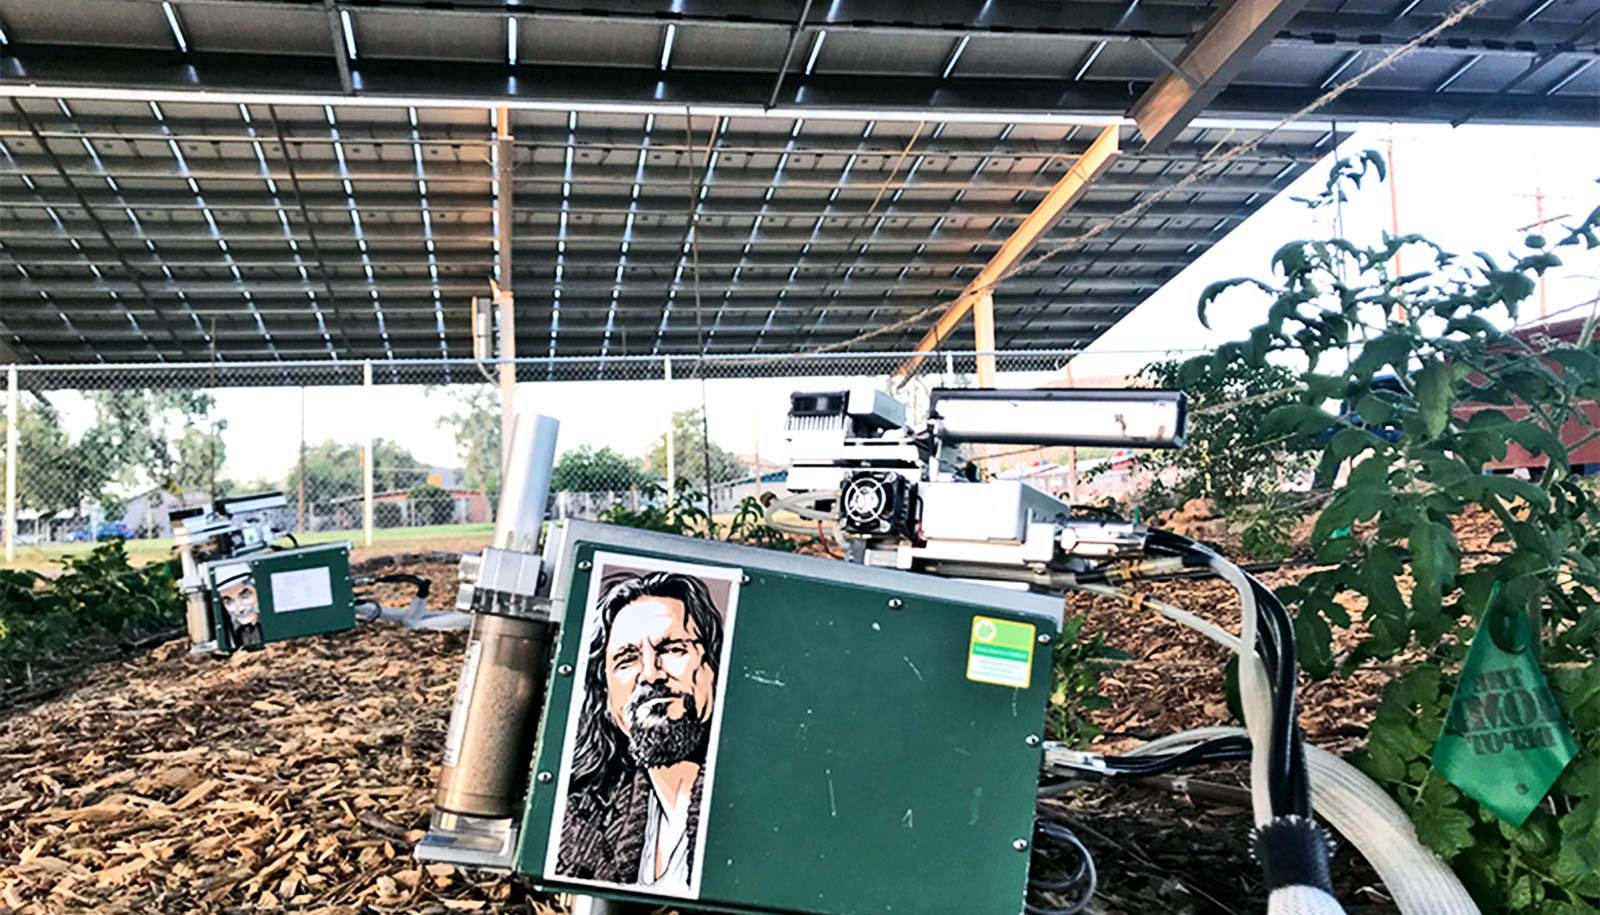 In the shade of the solar panels, a green device used for testing has a picture of actor Jeff Daniels as his character from the Big Lebowski, which sits next to some small crops